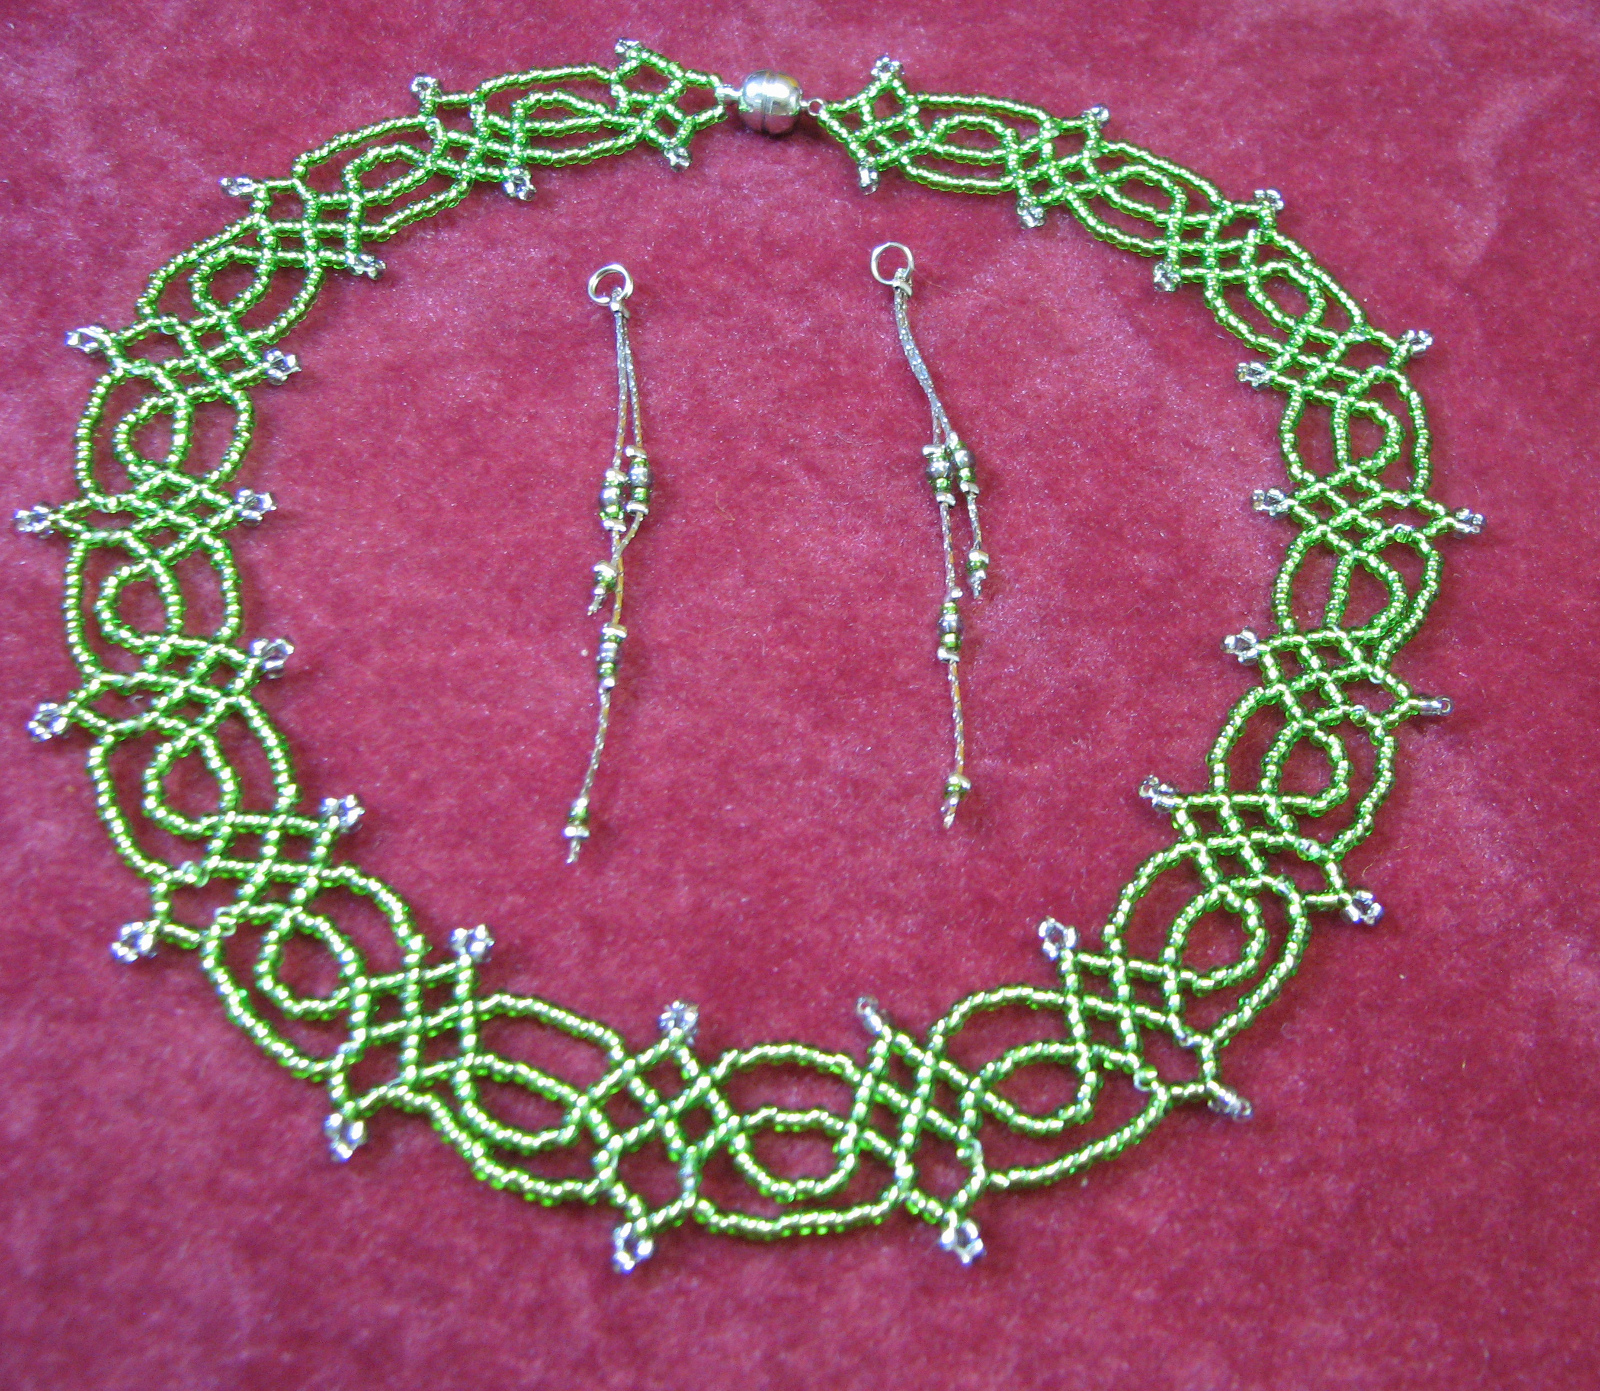 4_necklace_21_img_6541